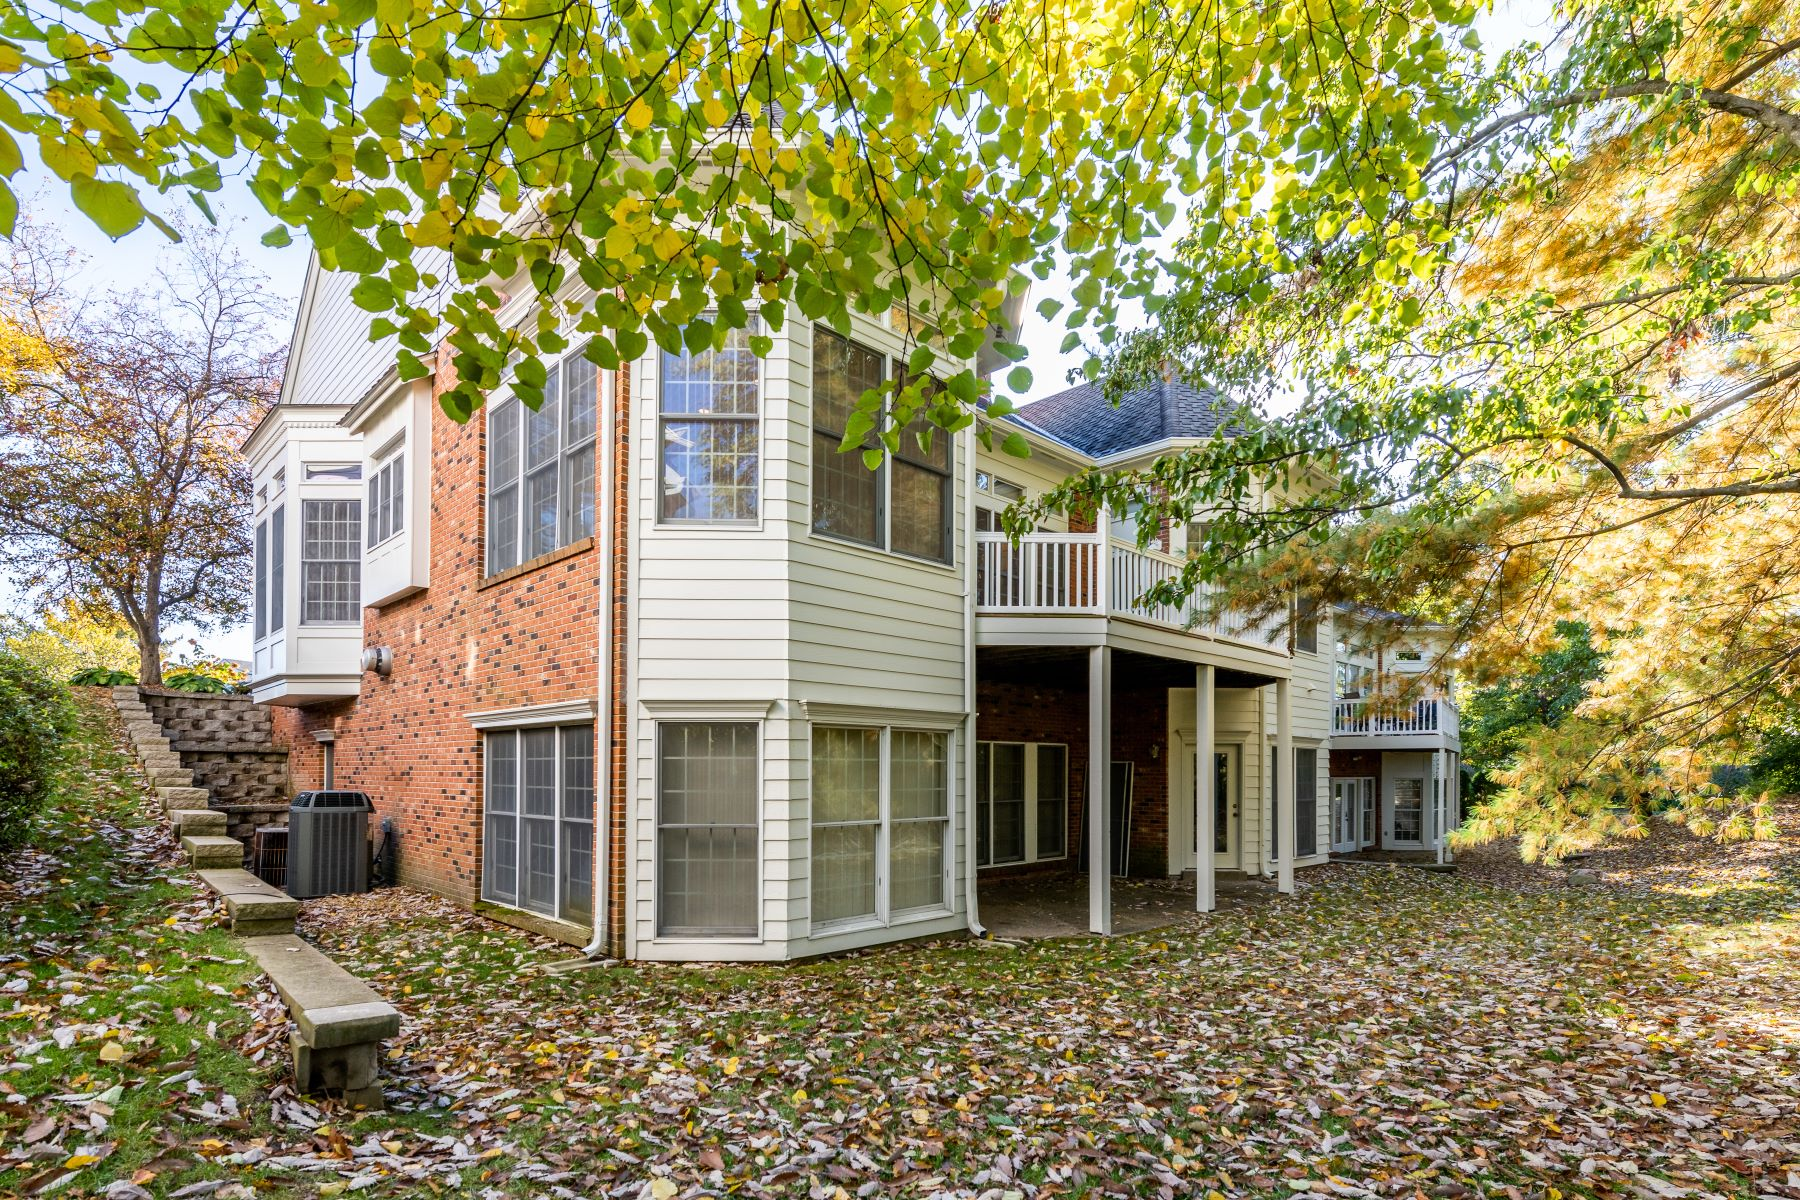 Additional photo for property listing at Spacious Chesterfield Villa 651 Spyglass Summit Drive Chesterfield, Missouri 63017 United States